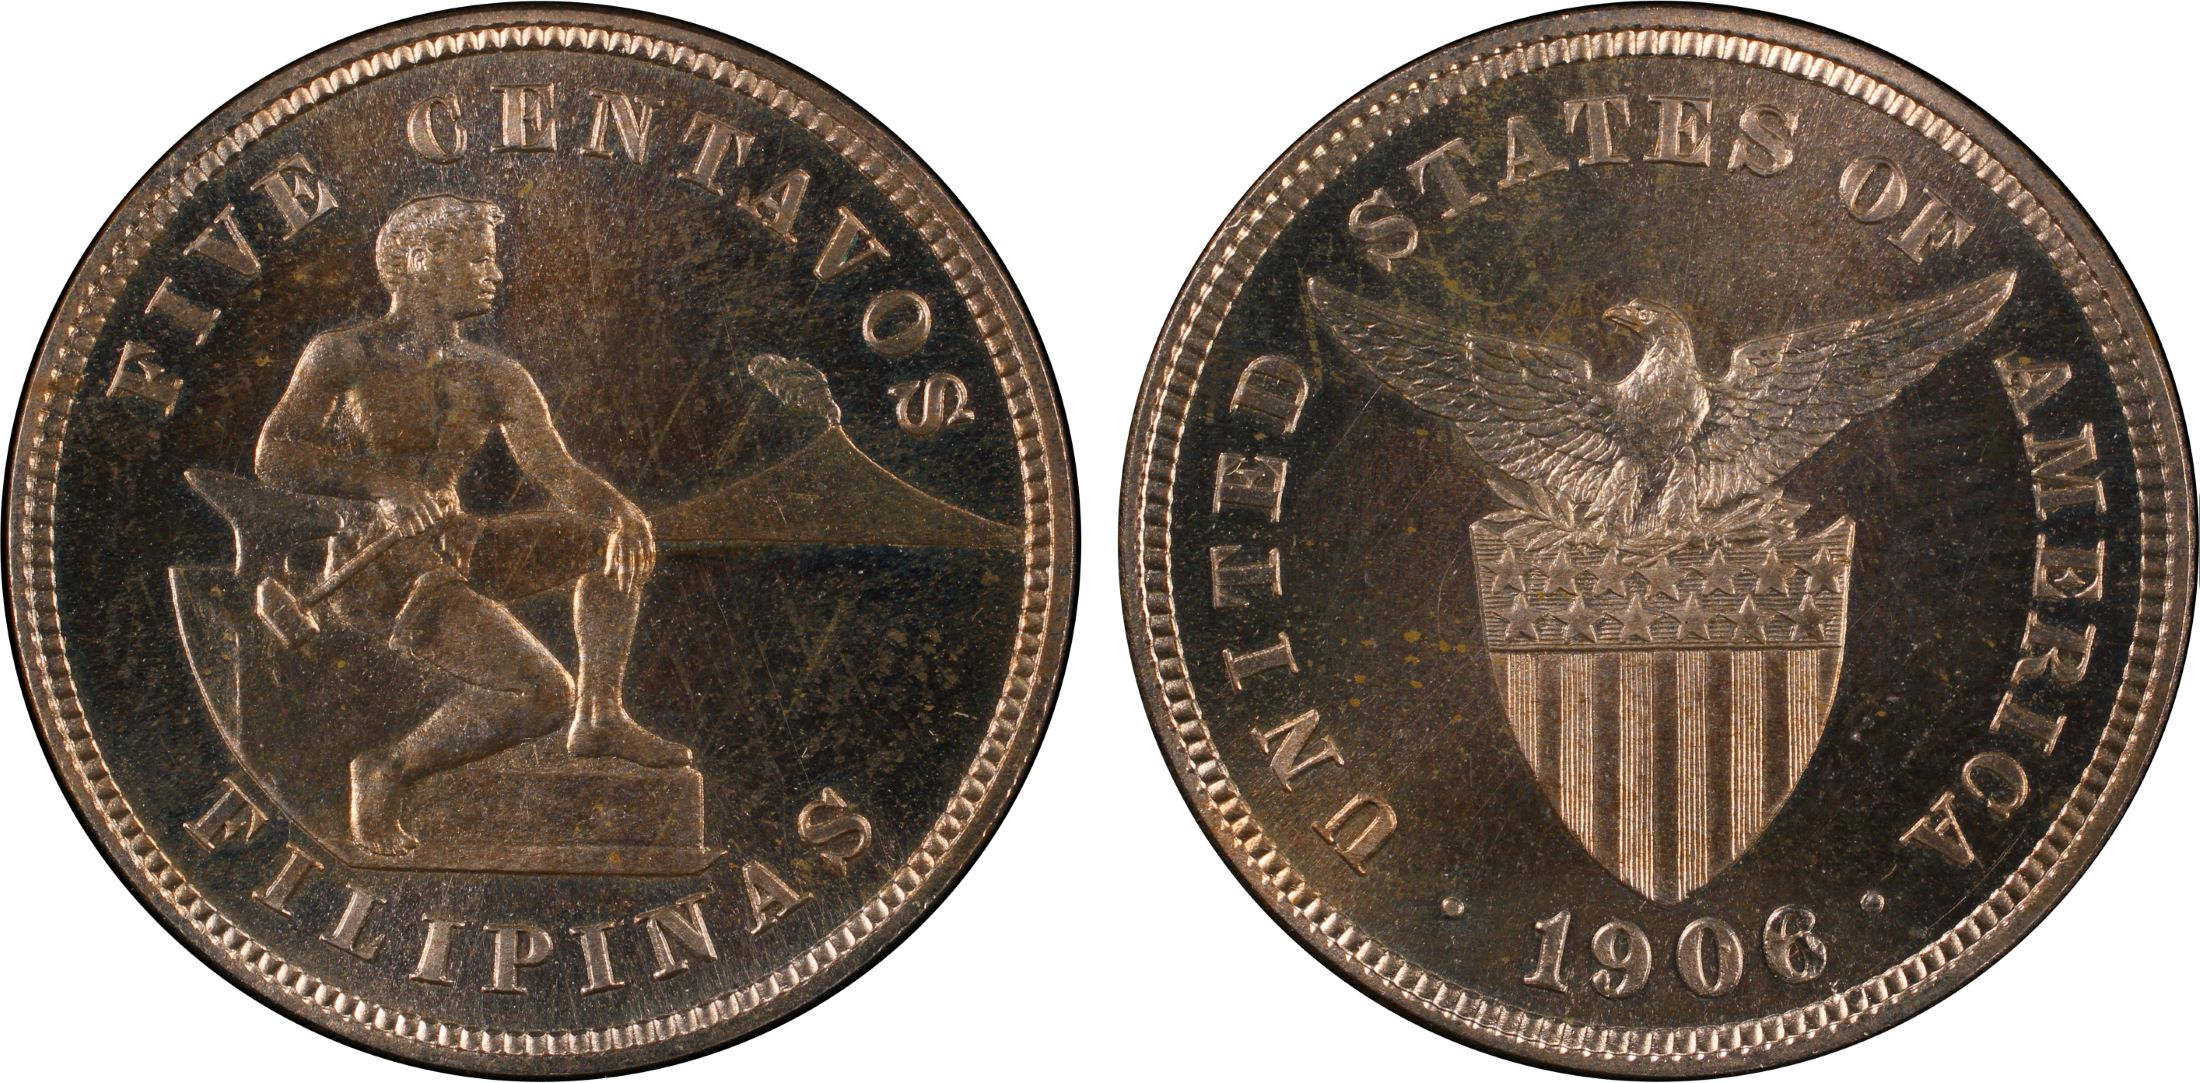 1906 coin philippines